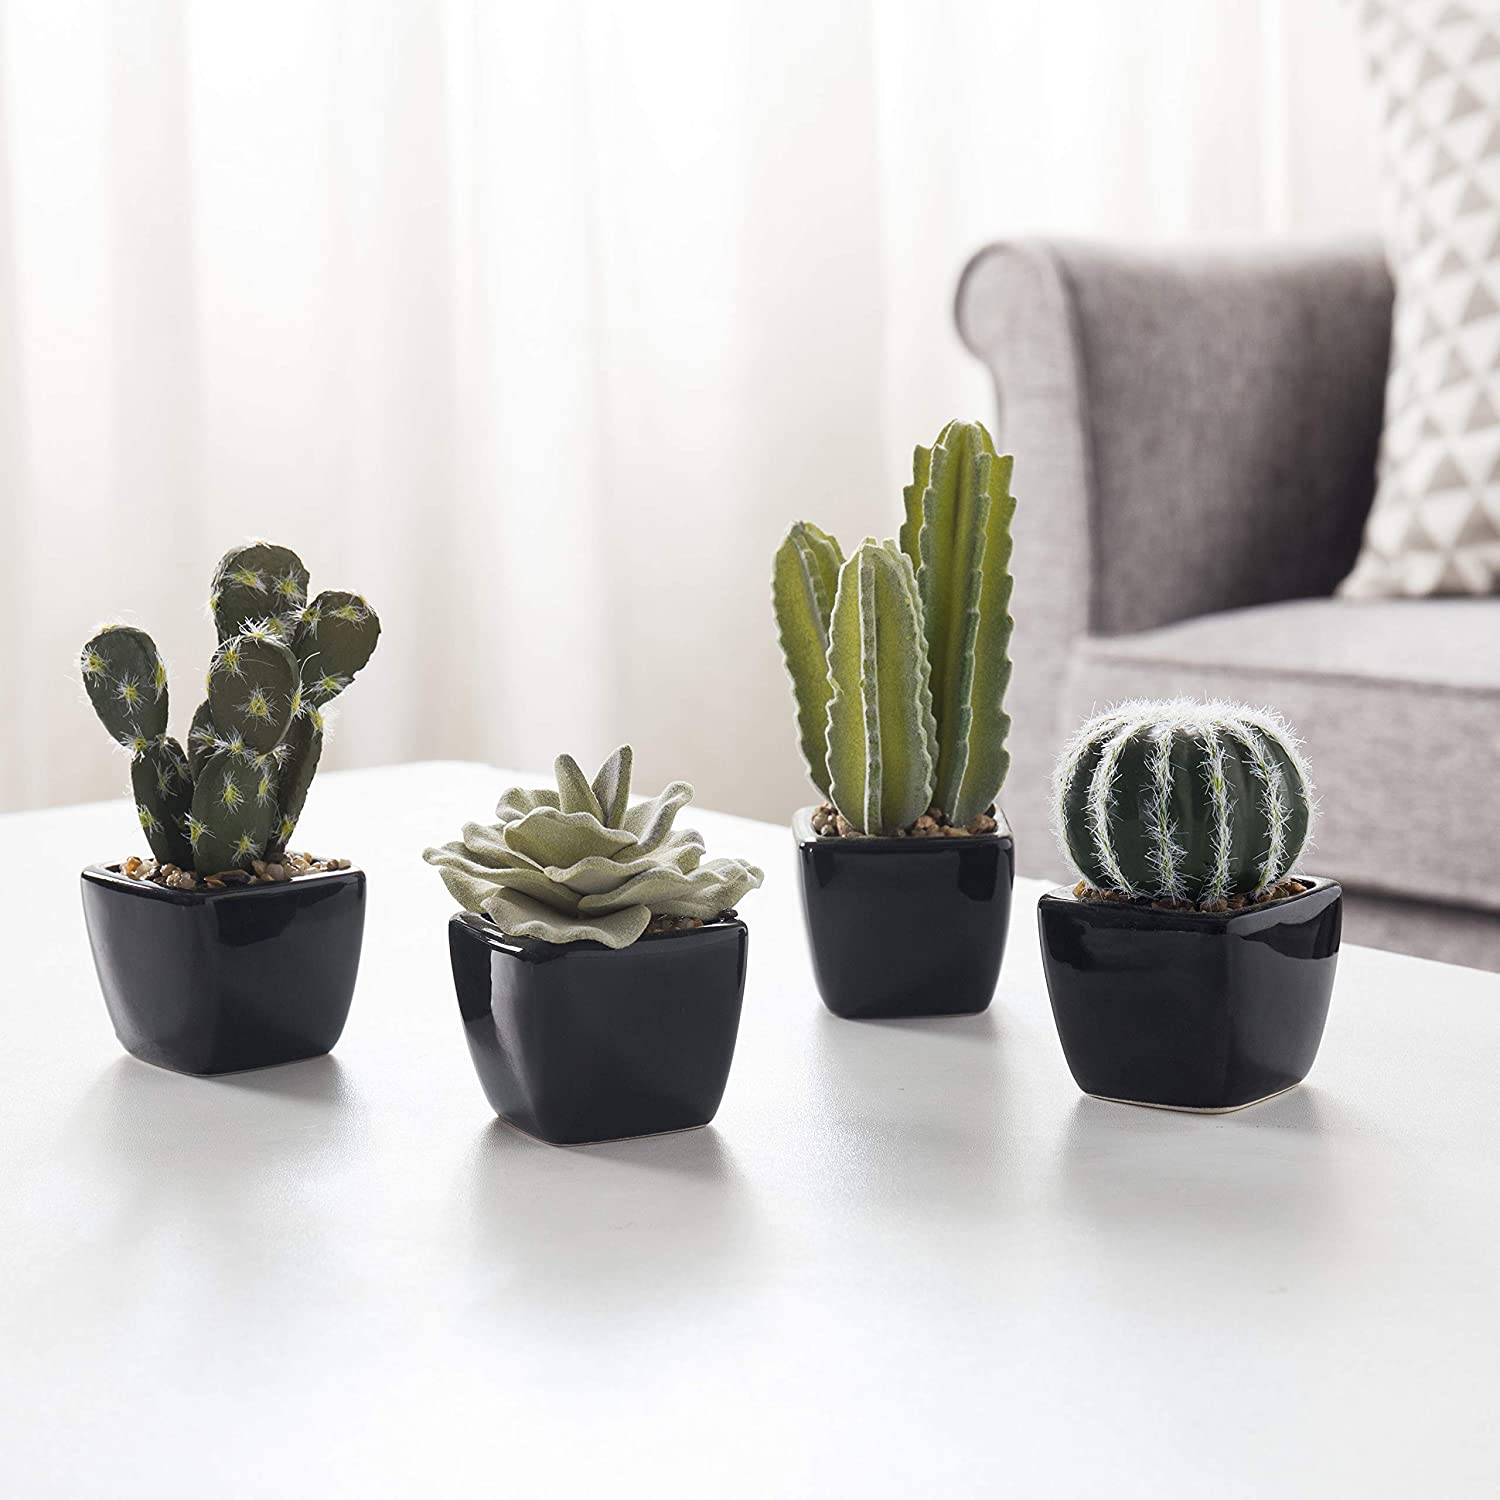 MyGift Mini Faux Assorted Succulent Plants in Black Ceramic Planters, Set of 4